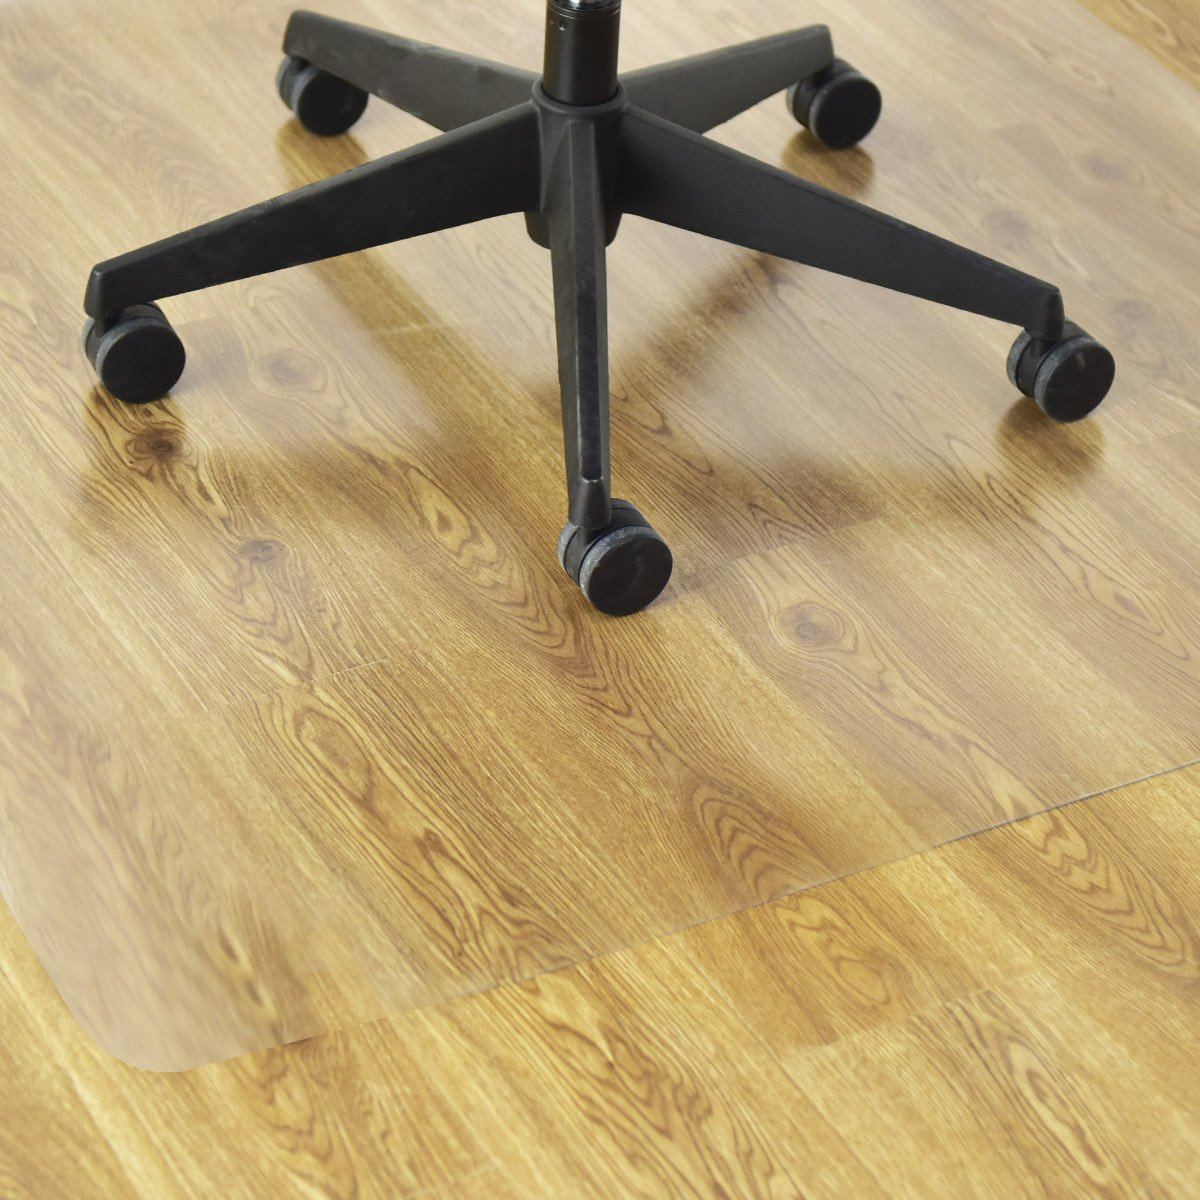 Goplus PVC Chair Mat for Hardwood Floor Clear Multi-Purpose Floor Protector for Office and Home Anti-Slip Floor Protective Mats (47'' x 47'') by Goplus (Image #3)